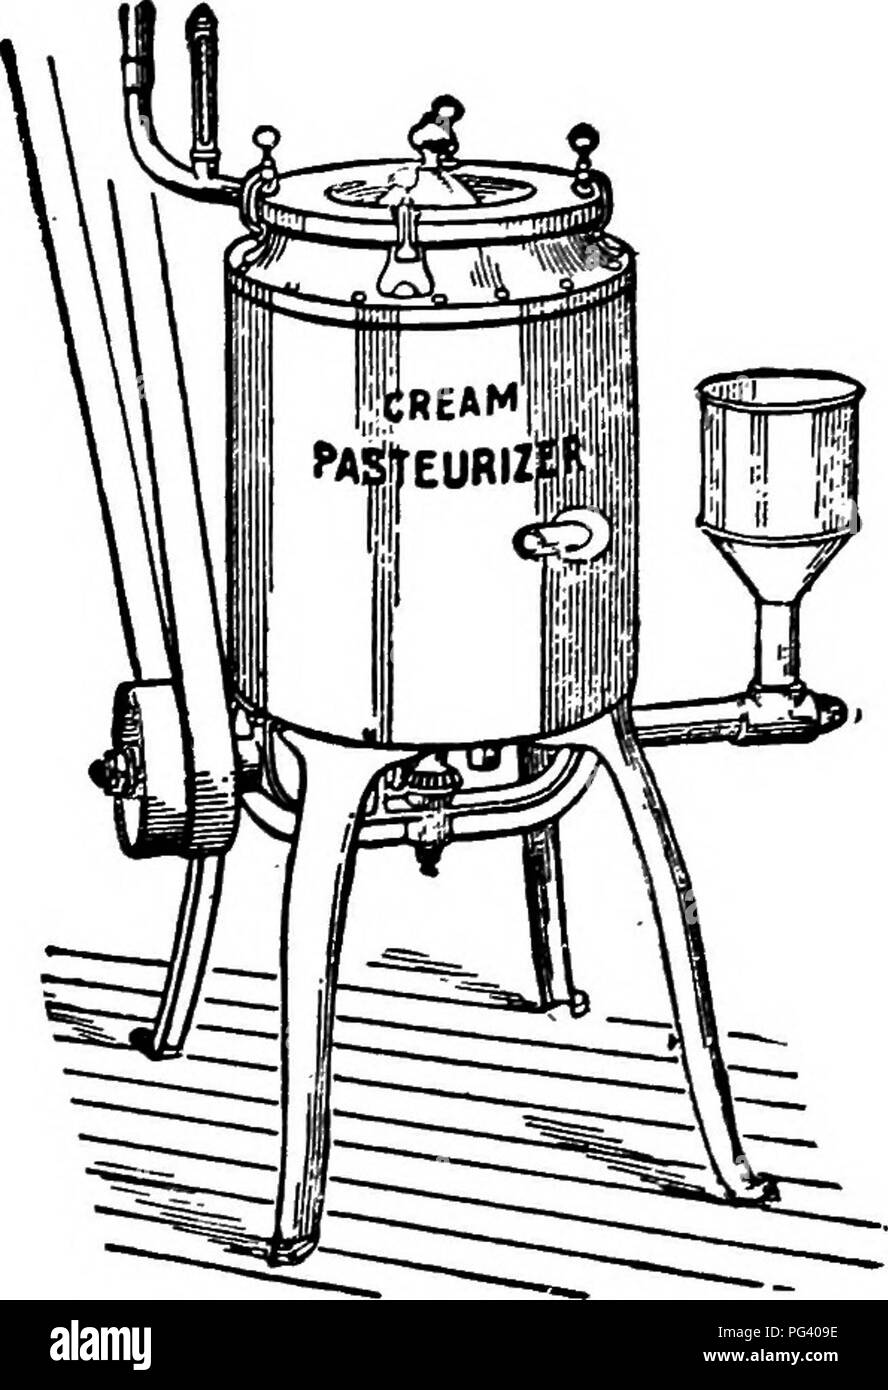 . Principles and practice of butter-making : a treatise on the chemical and physical properties of milk and its components, the handling of milk and cream, and the manufacture of butter therefrom . Butter; Milk. 176 BUTTER-MAKING. (5) Proper utilization of steam turned into the pasteurizer. (1) Heating-surface.—It is a well known fact that some metals will conduct heat better than others. The relative heat conductivity of the two substances used chiefly for pasteurizers, viz., copper and tin, is .918 and .145 respectively. This means that copper will conduct heat nearly seven times faster than - Stock Image